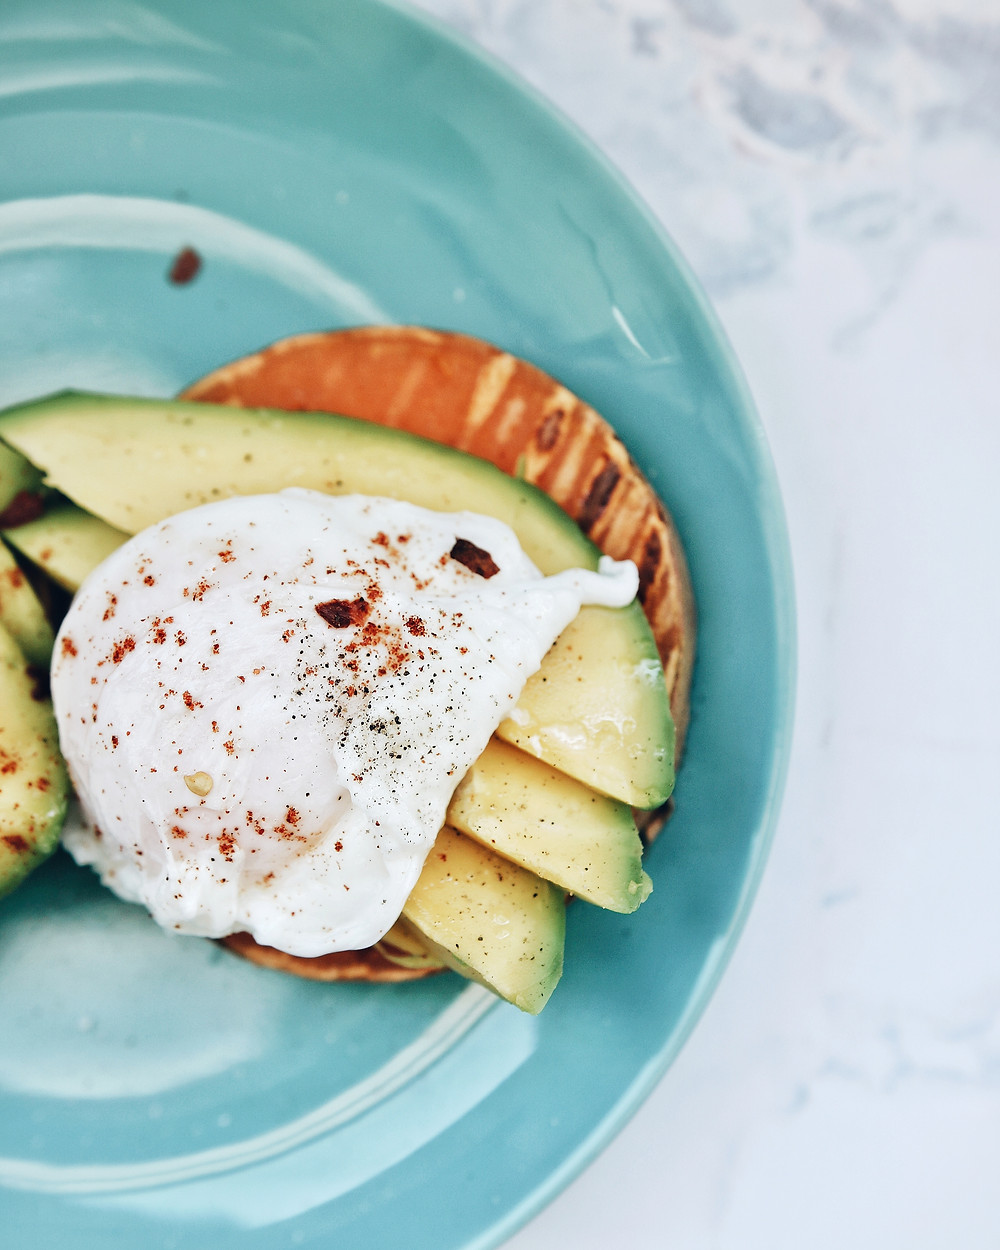 A blue plate with sweet potato toast, on top of which are avocado slices and a poached egg sprinkled with pepper and chili flakes